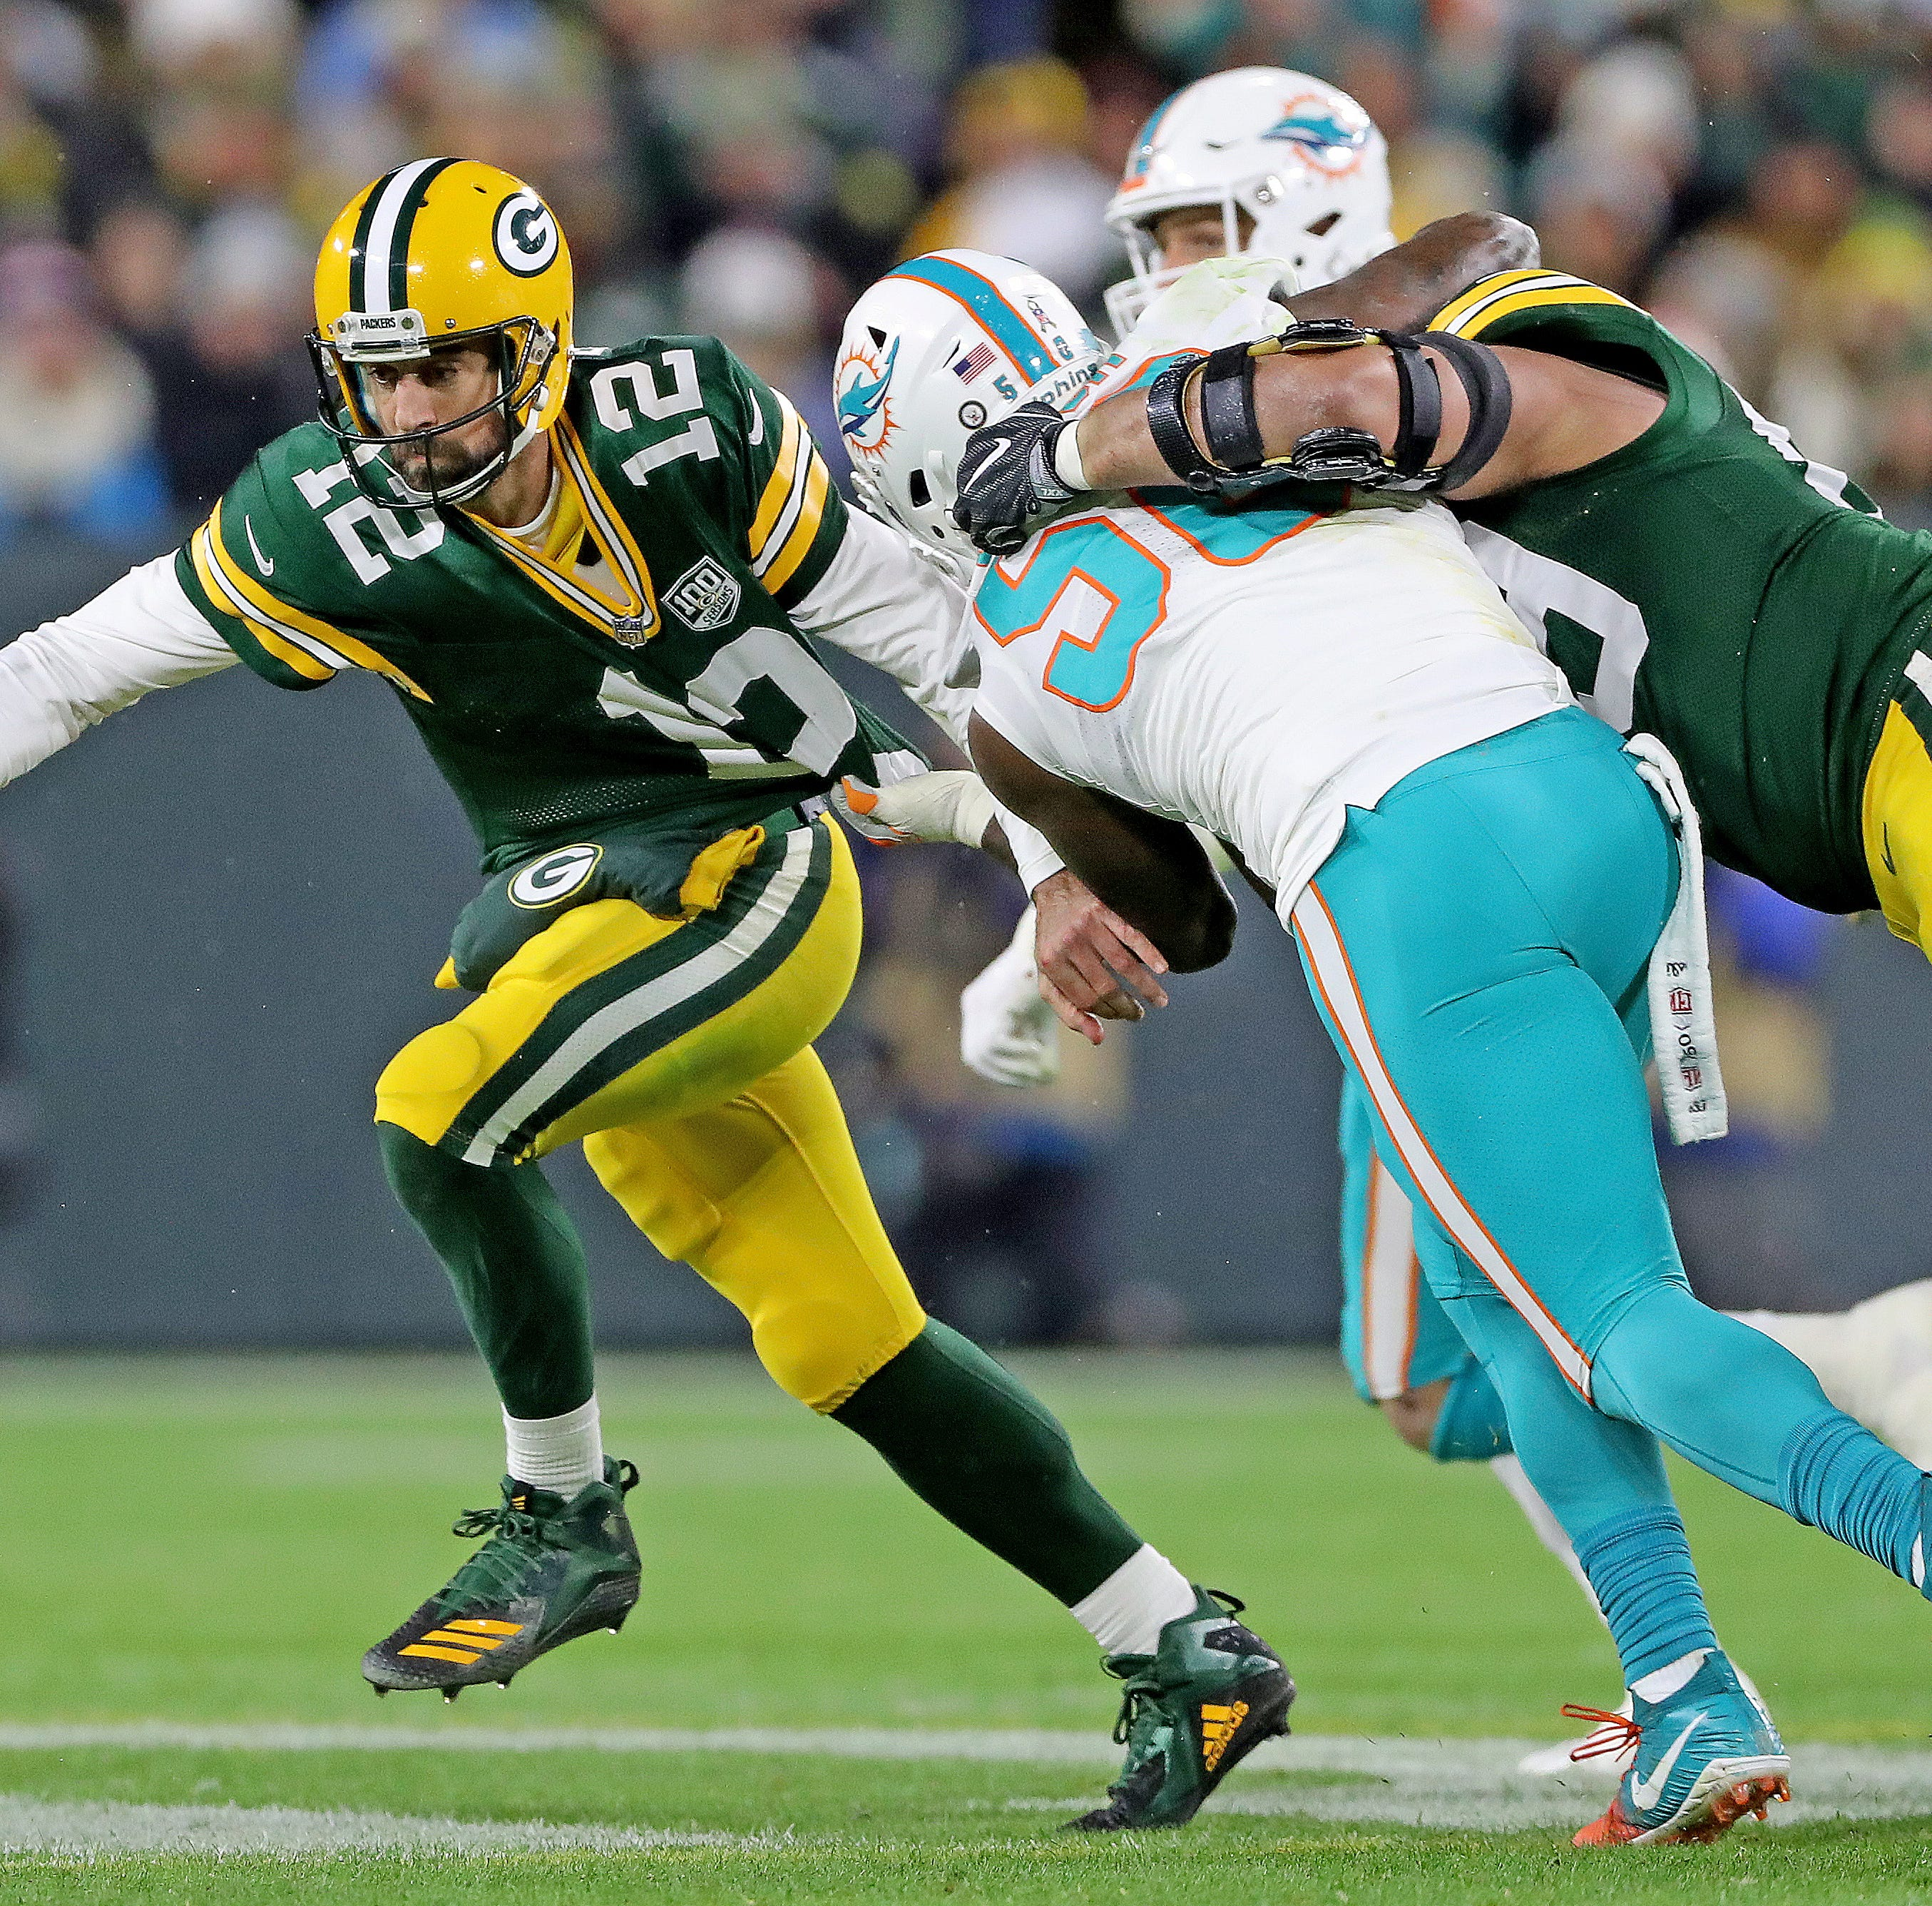 Keeping Packers QB Aaron Rodgers 'clean' puts focus on pass protection